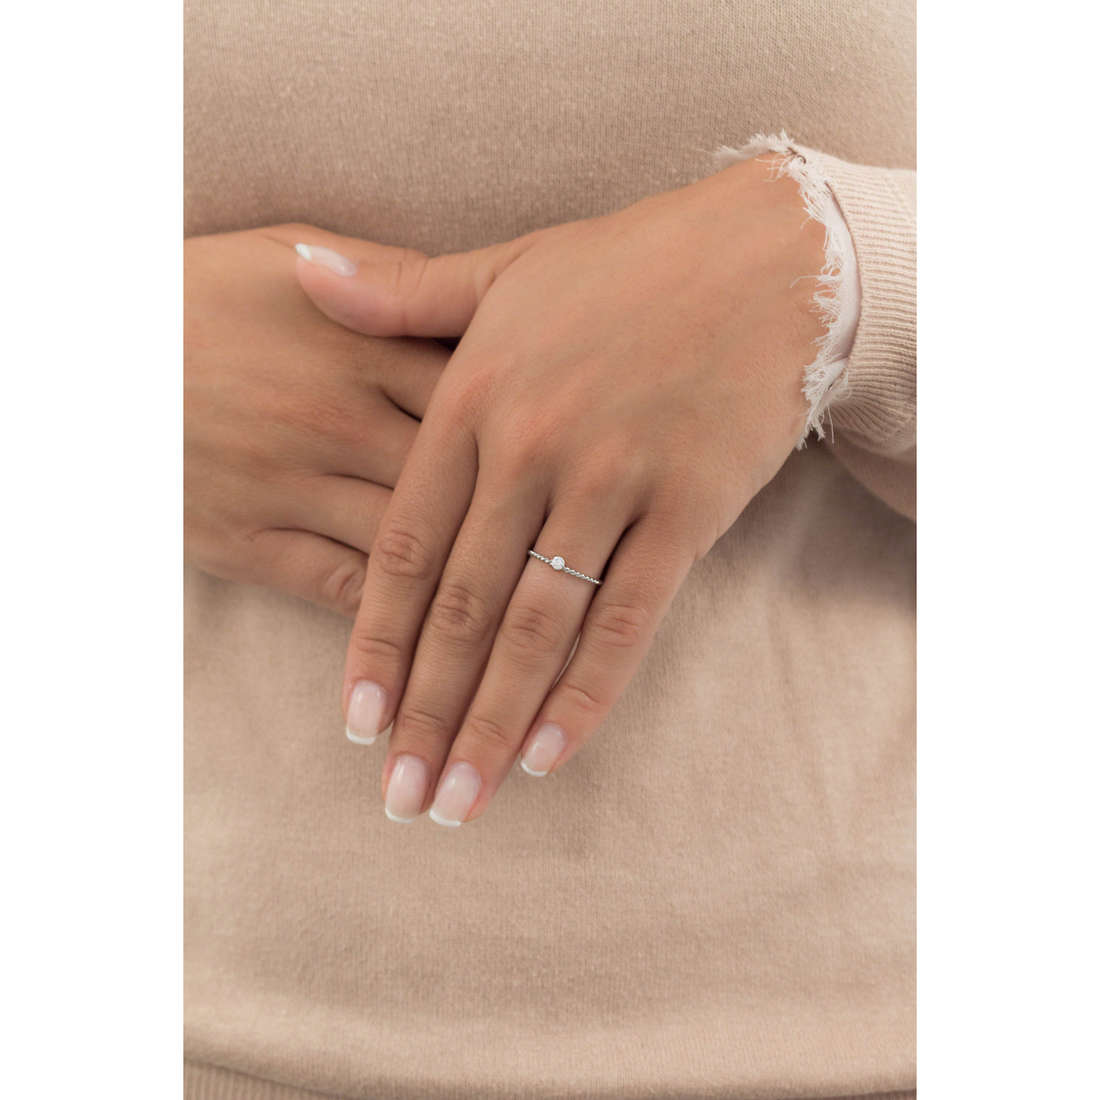 Marlù rings Time To woman 18AN043-M indosso